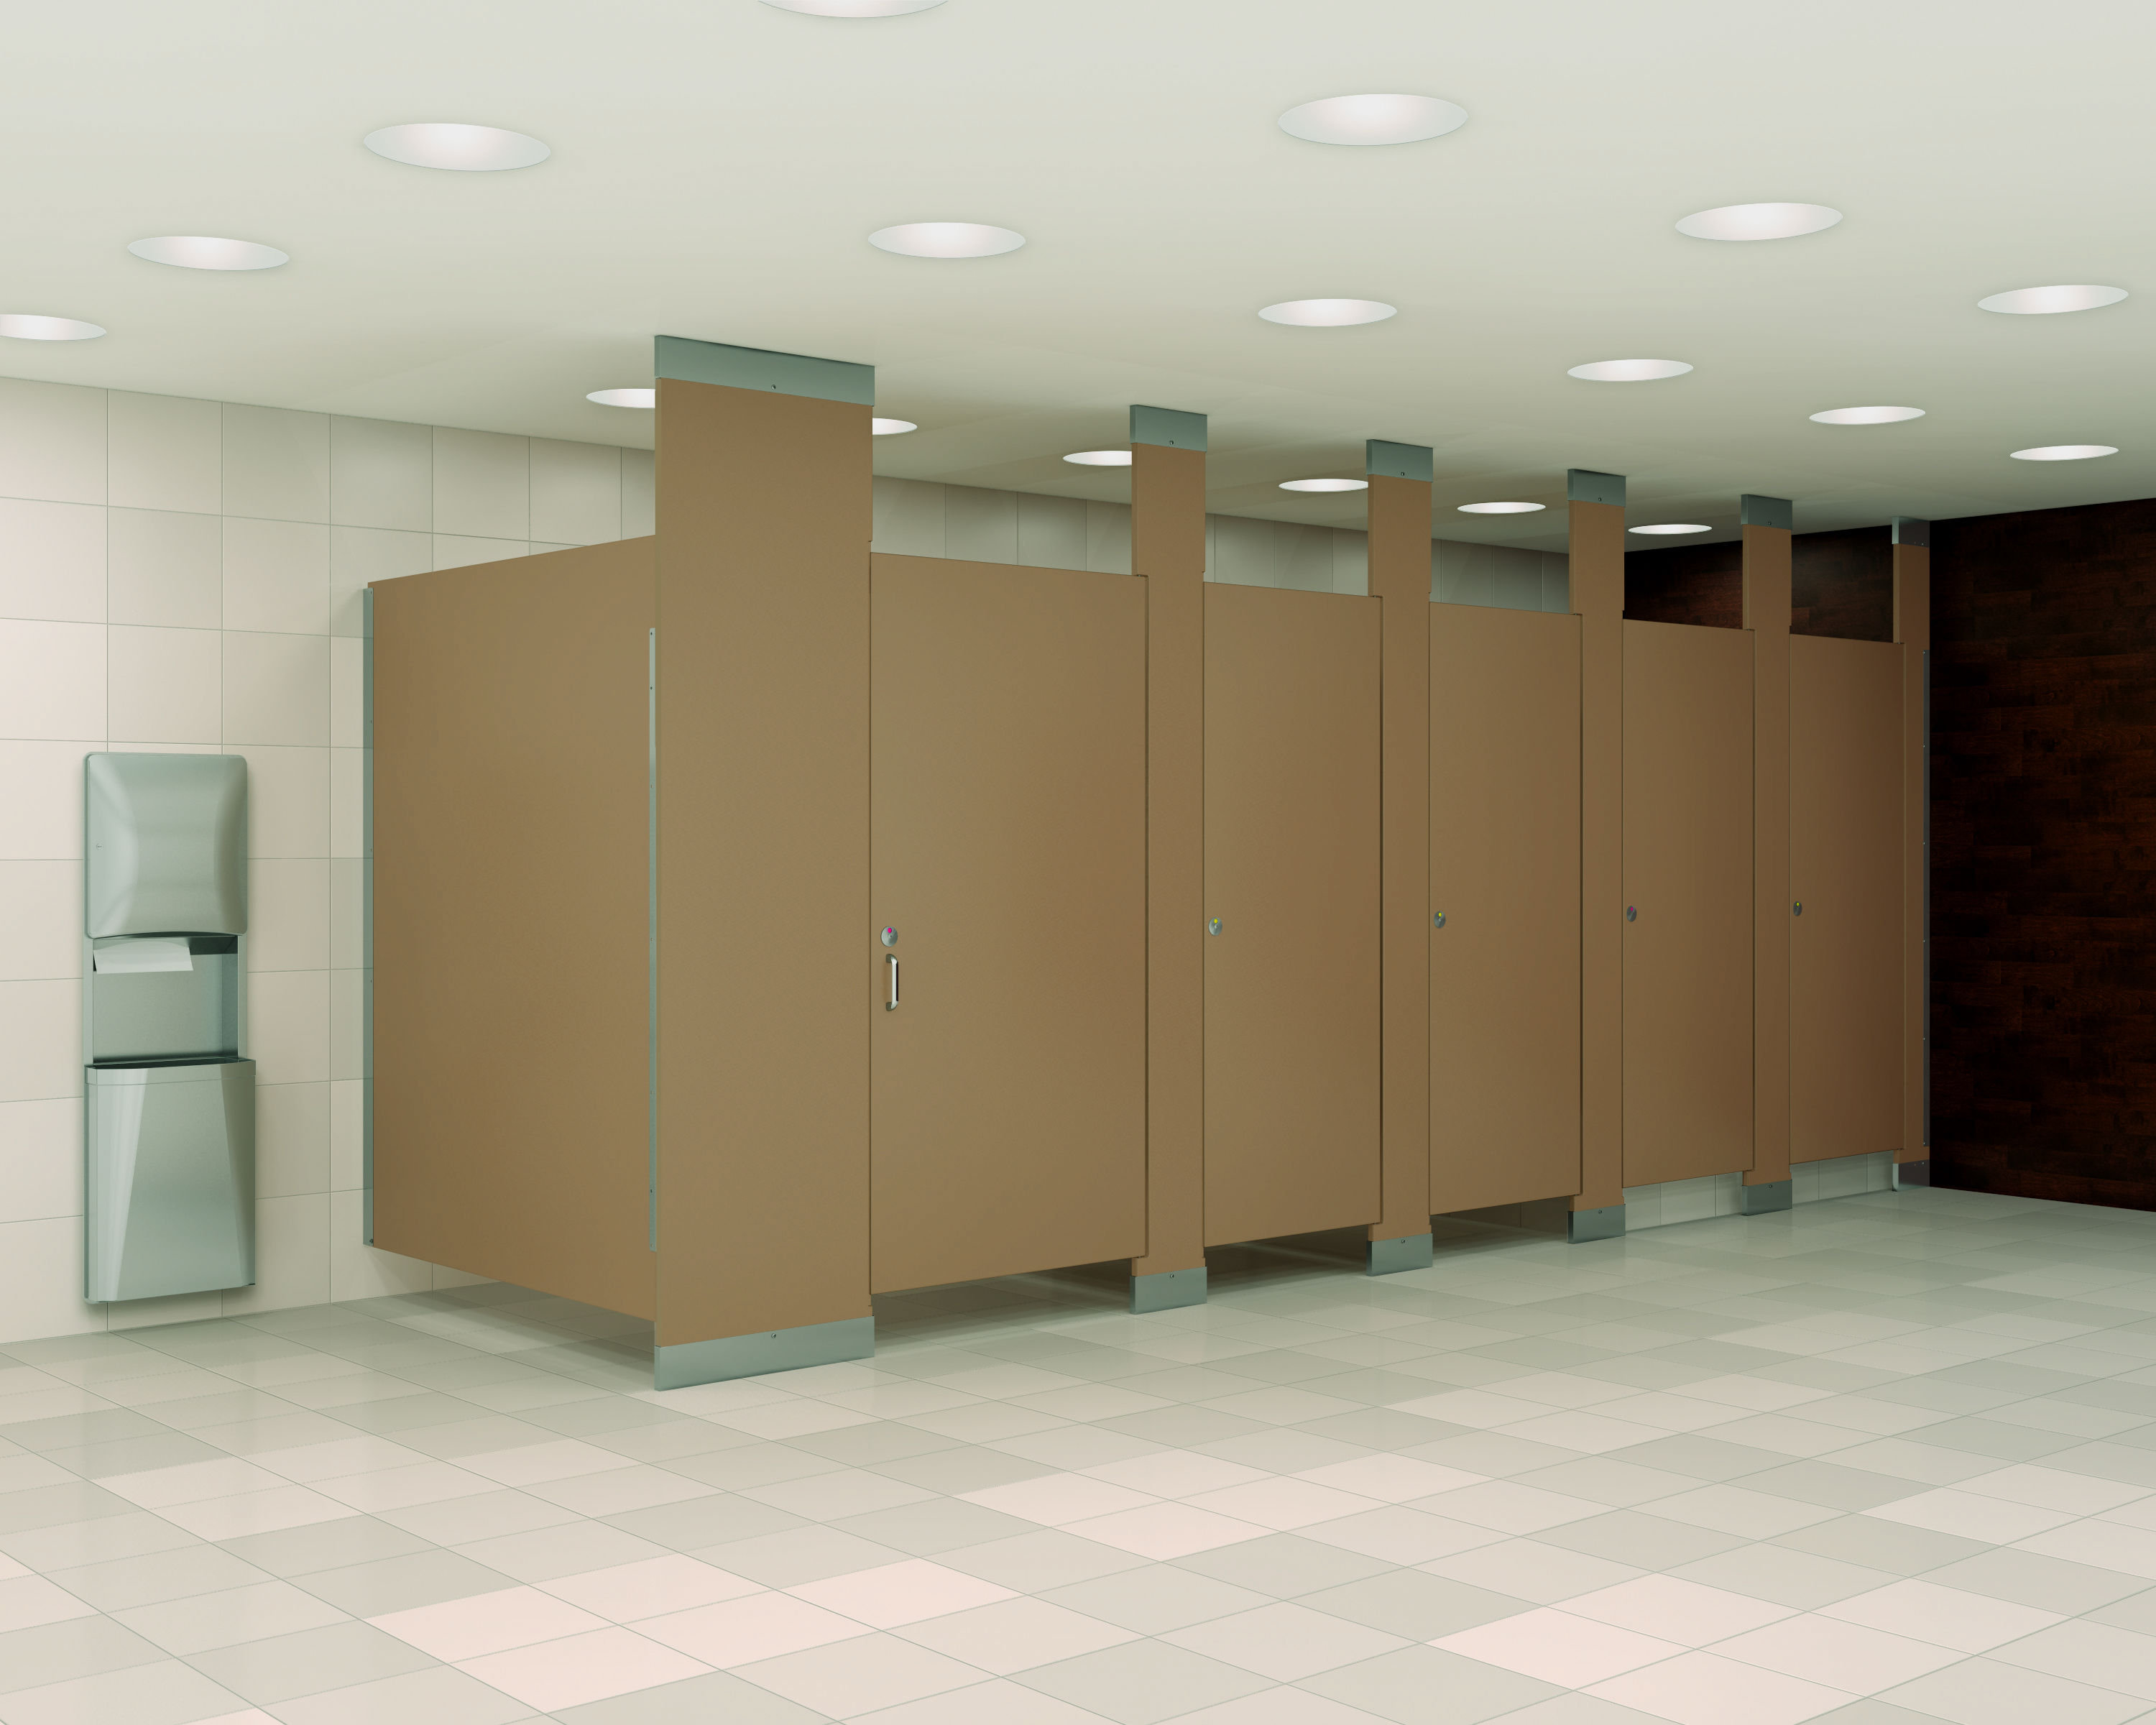 Powder Room Privacy Stalls Partitions Sales And Design - Public bathroom partitions